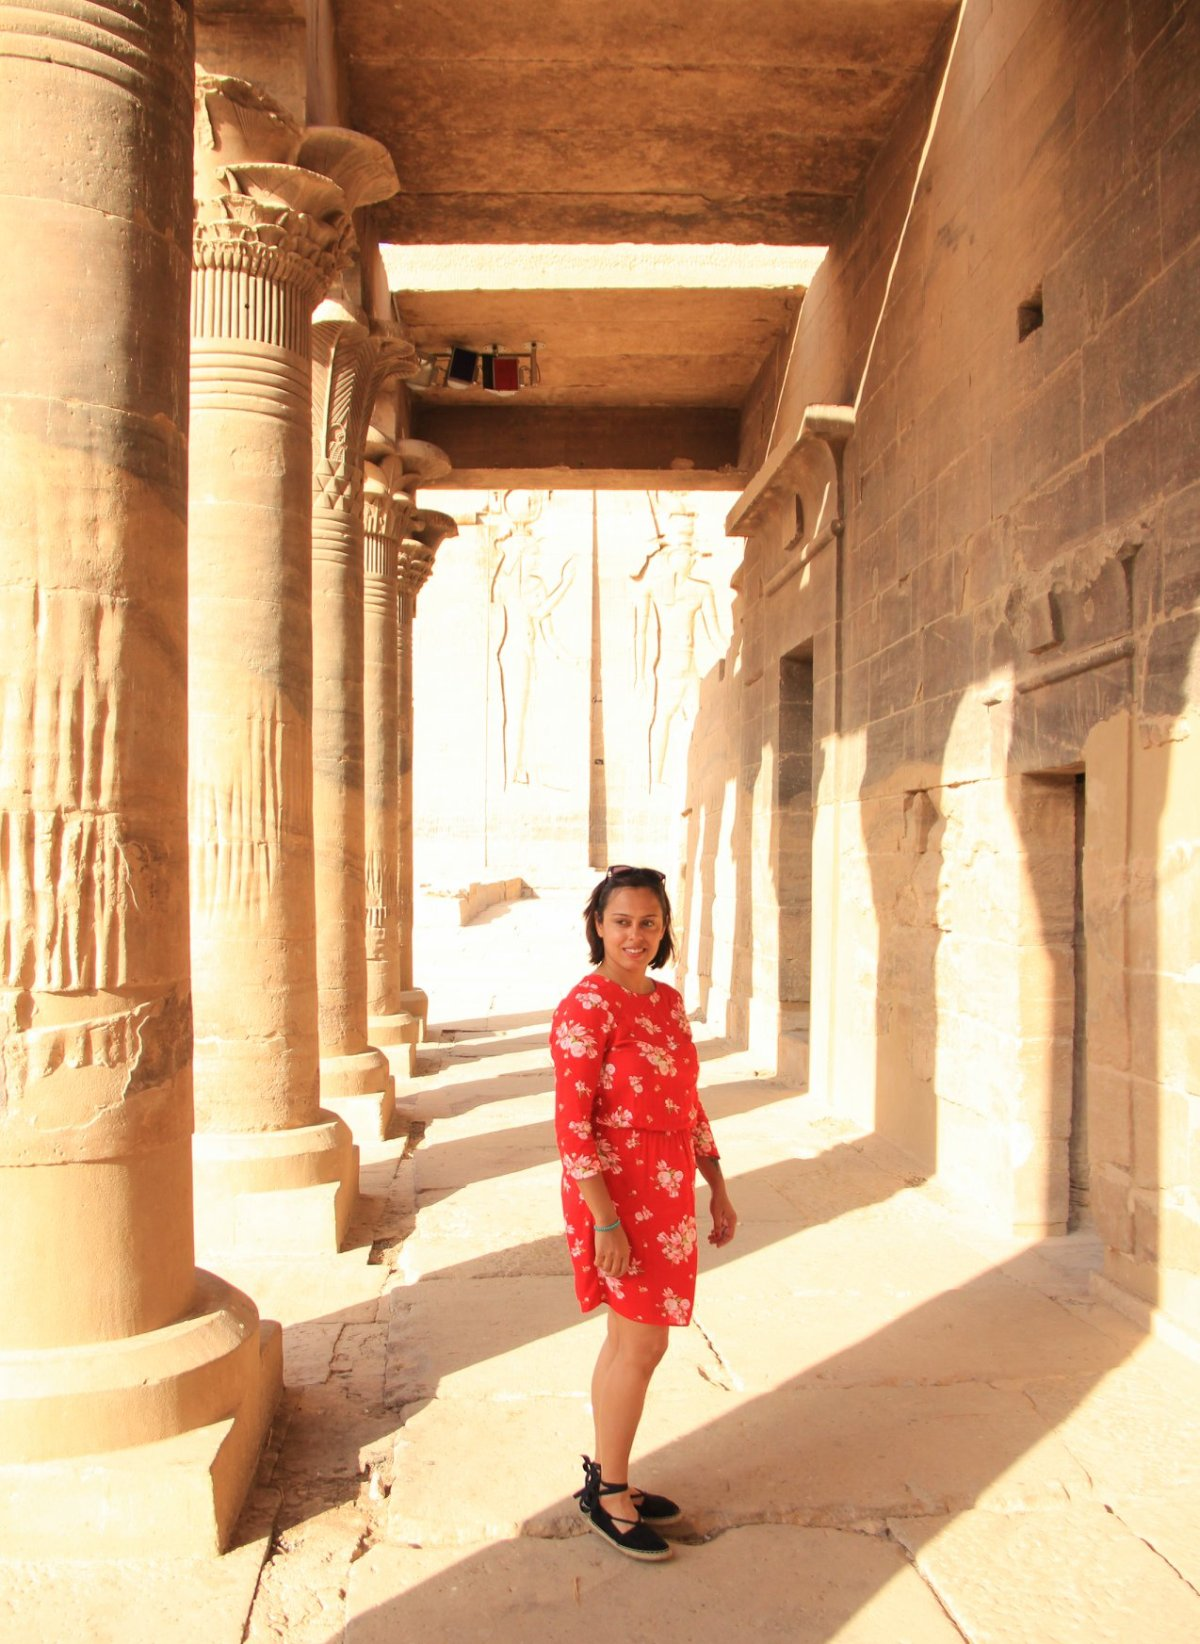 A visit to the philae temple is a must according to every aswan guide